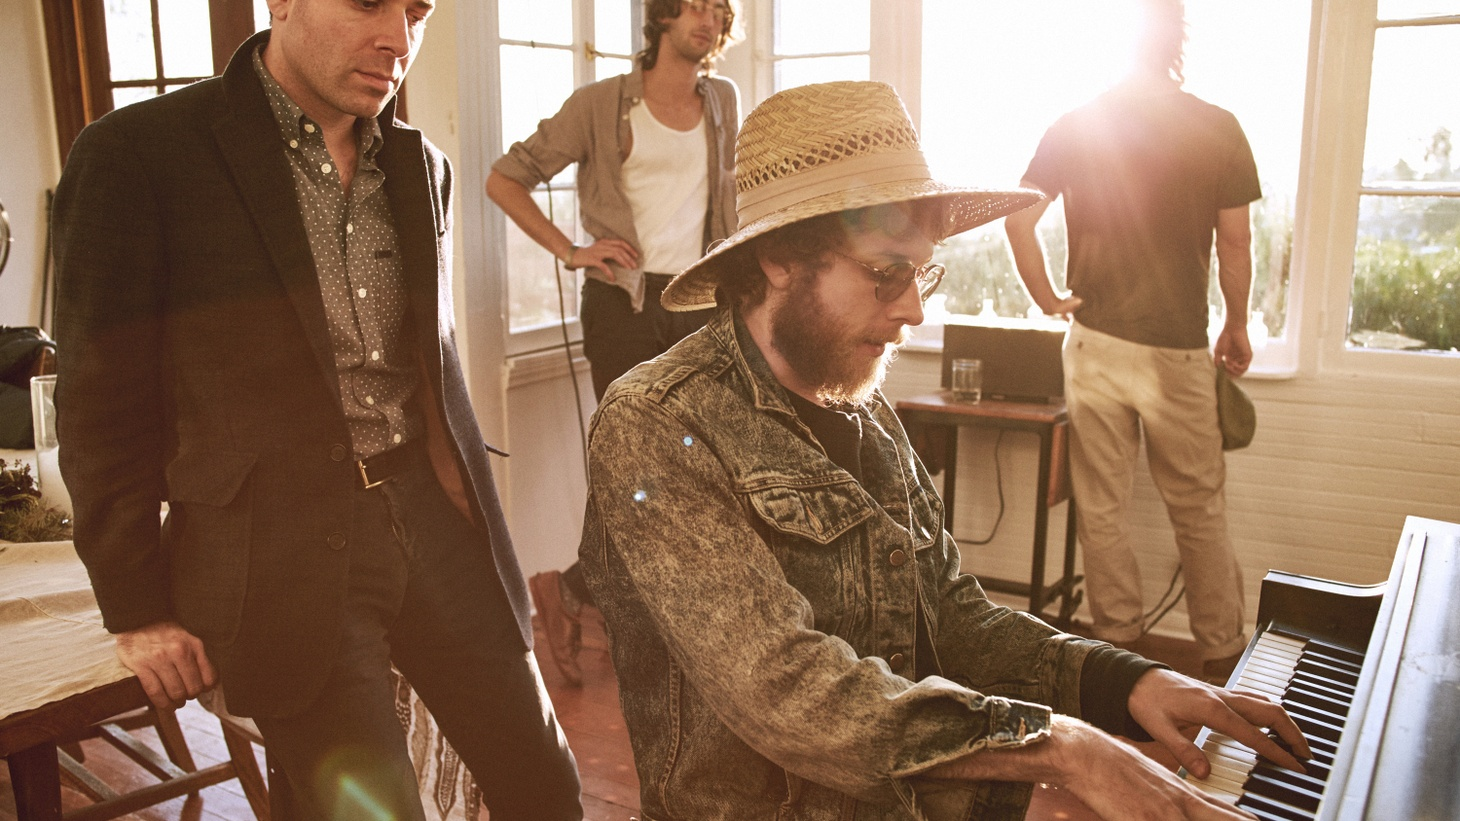 For their new album, the boys behind the LA-based band Dawes teamed up with gifted producer David Rawlings, best known for his work with Gillian Welch, Bright Eyes and Ryan Adams.